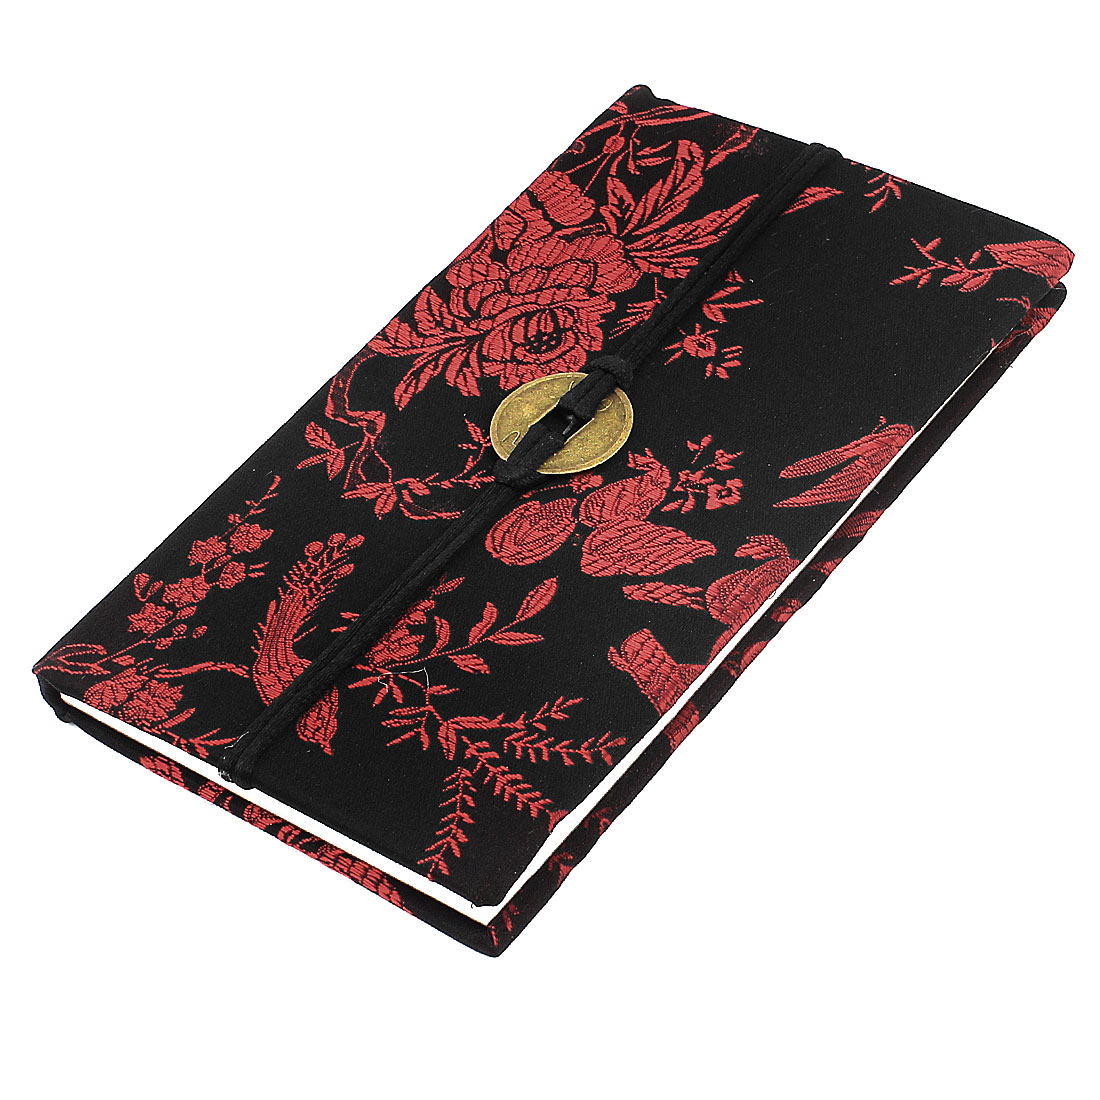 Embroidery Floral Pattern Nylon Coated Copper Coin String Decor Memo Book Notepad Black Red